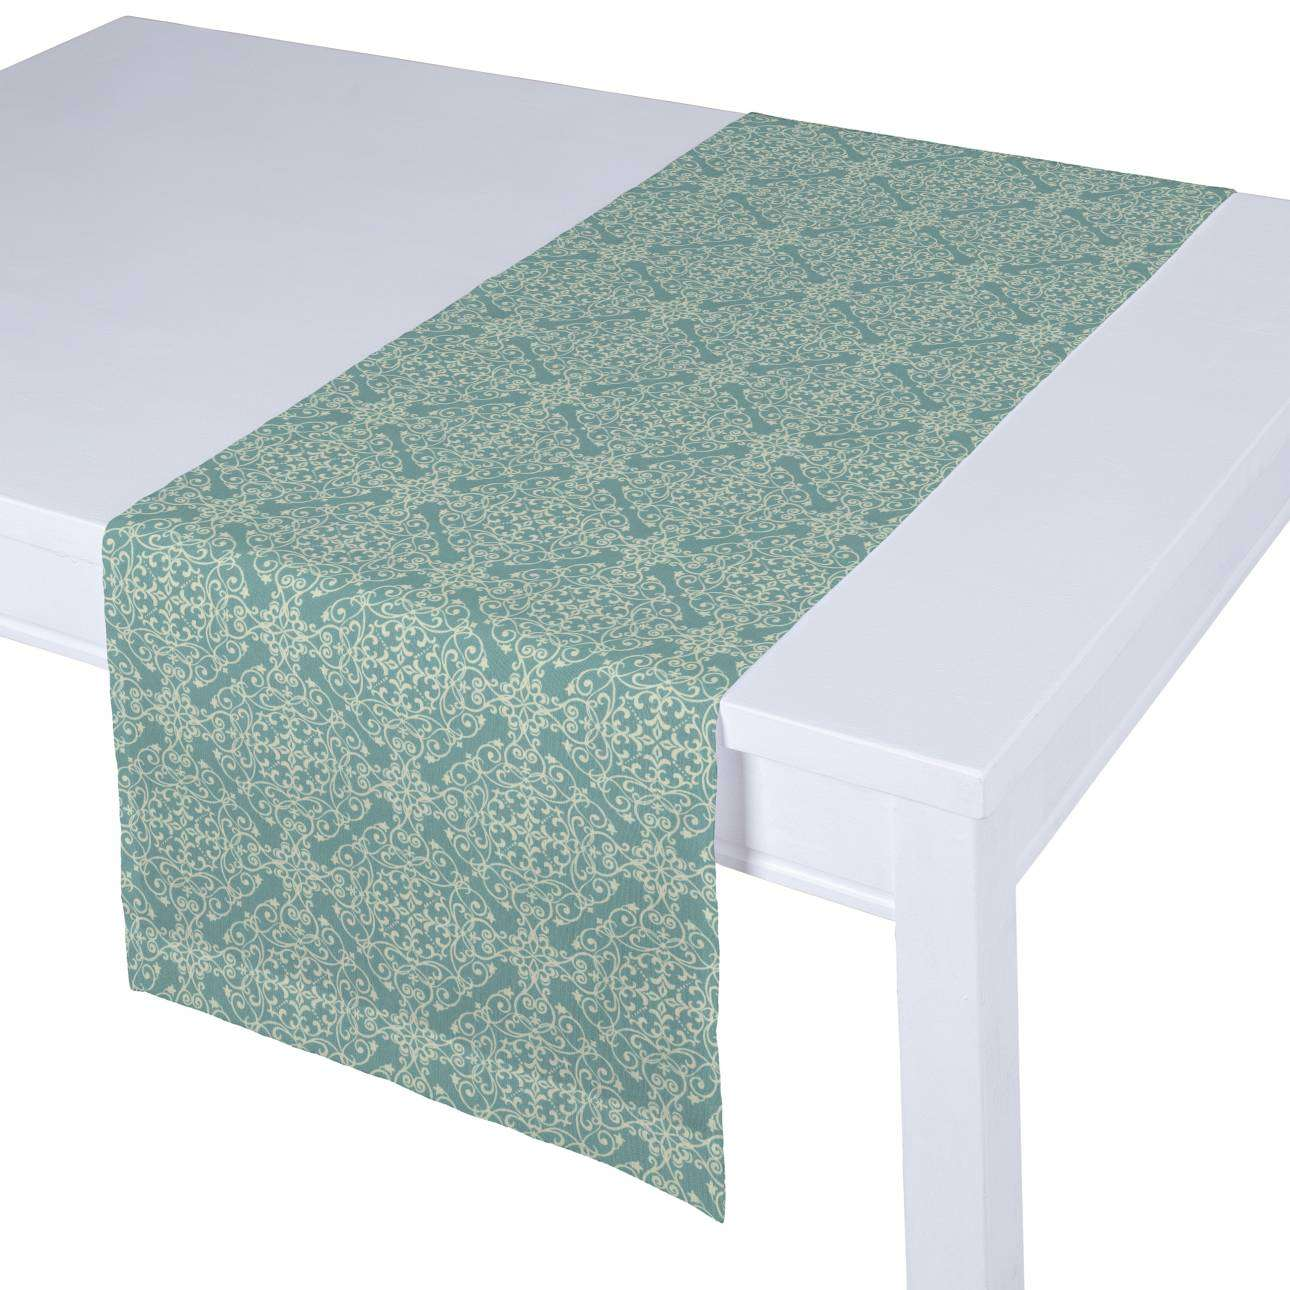 Table runner 40 x 130 cm (16 x 51 inch) in collection Flowers, fabric: 140-37